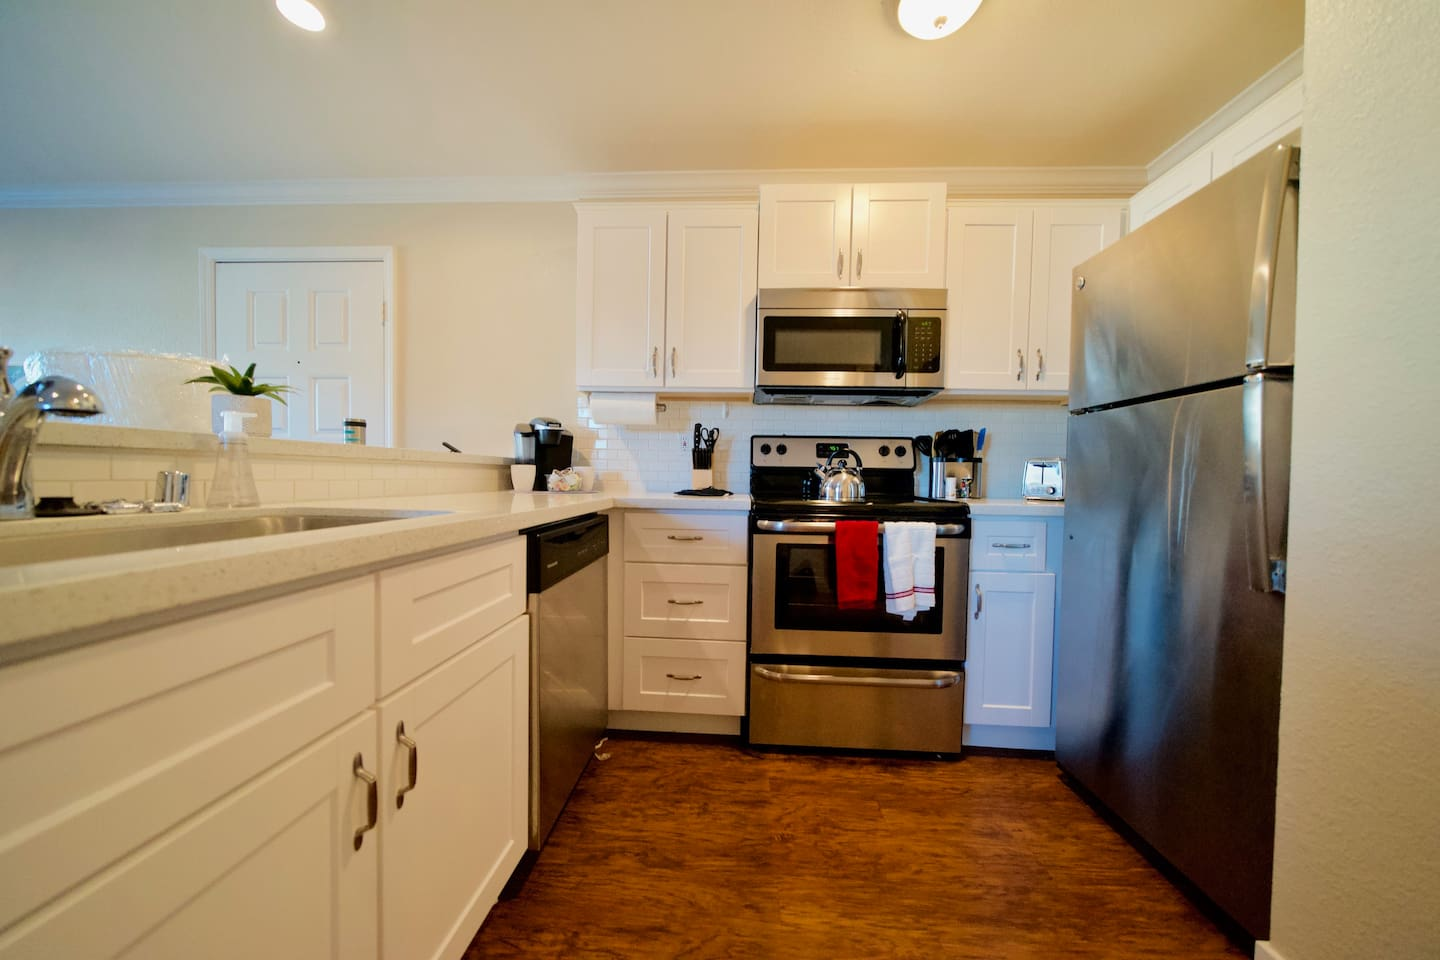 Upgraded and remodeled kitchen